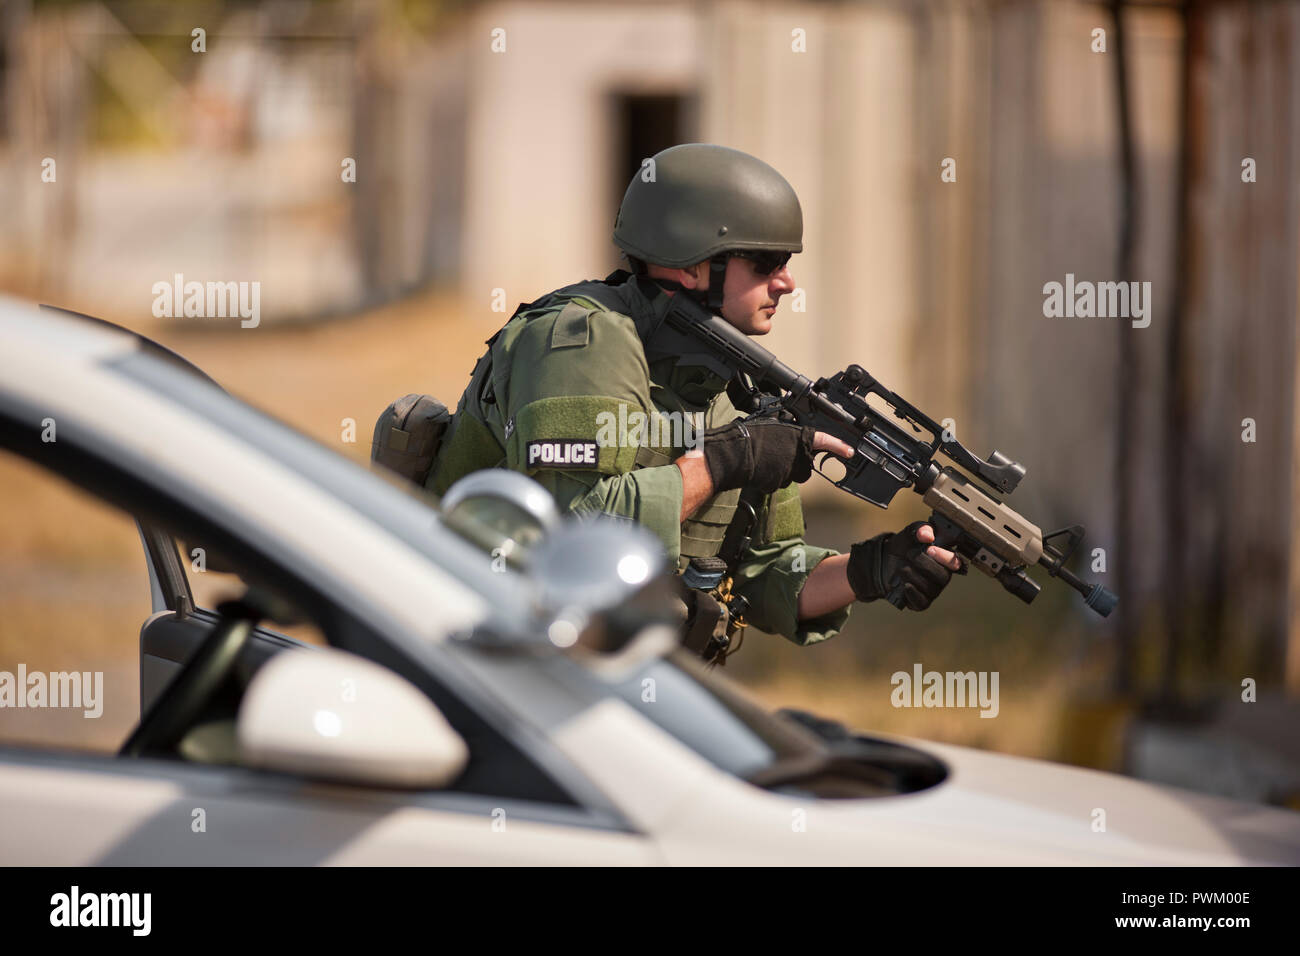 Male police officer holding a gun during an exercise at a training facility. - Stock Image